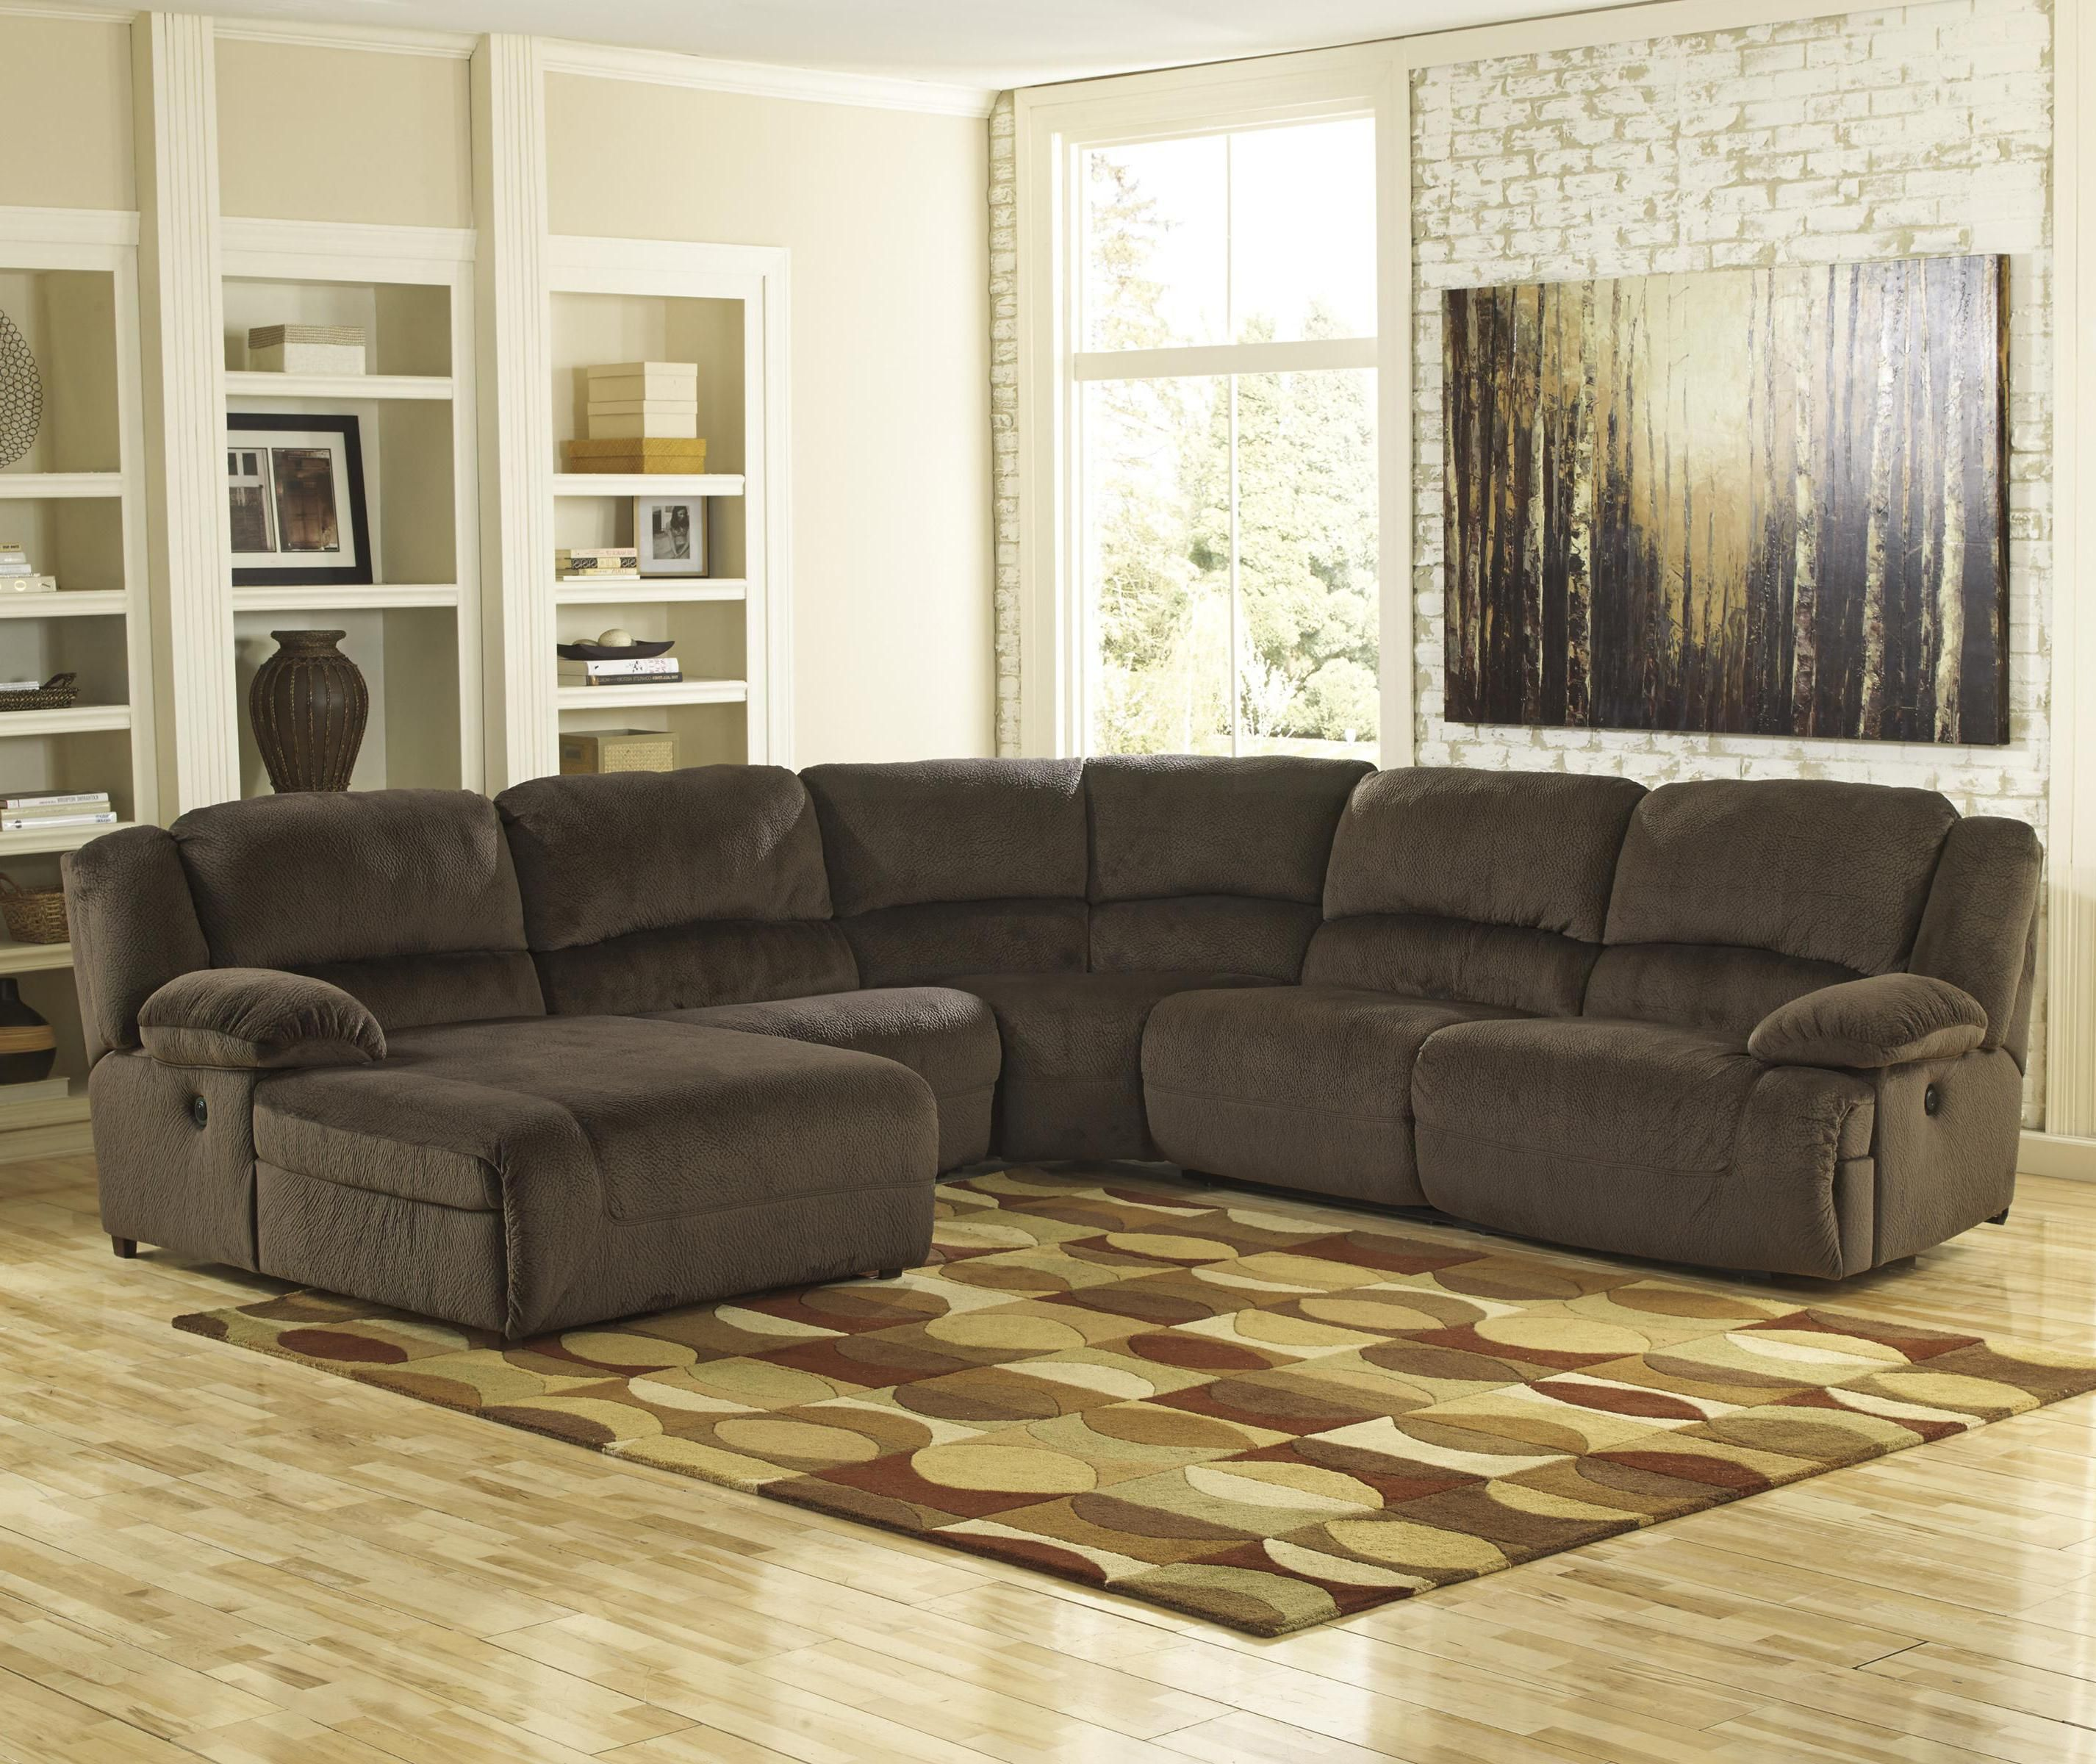 Toletta - Chocolate Reclining Sectional with Left Press Back Chaise ...